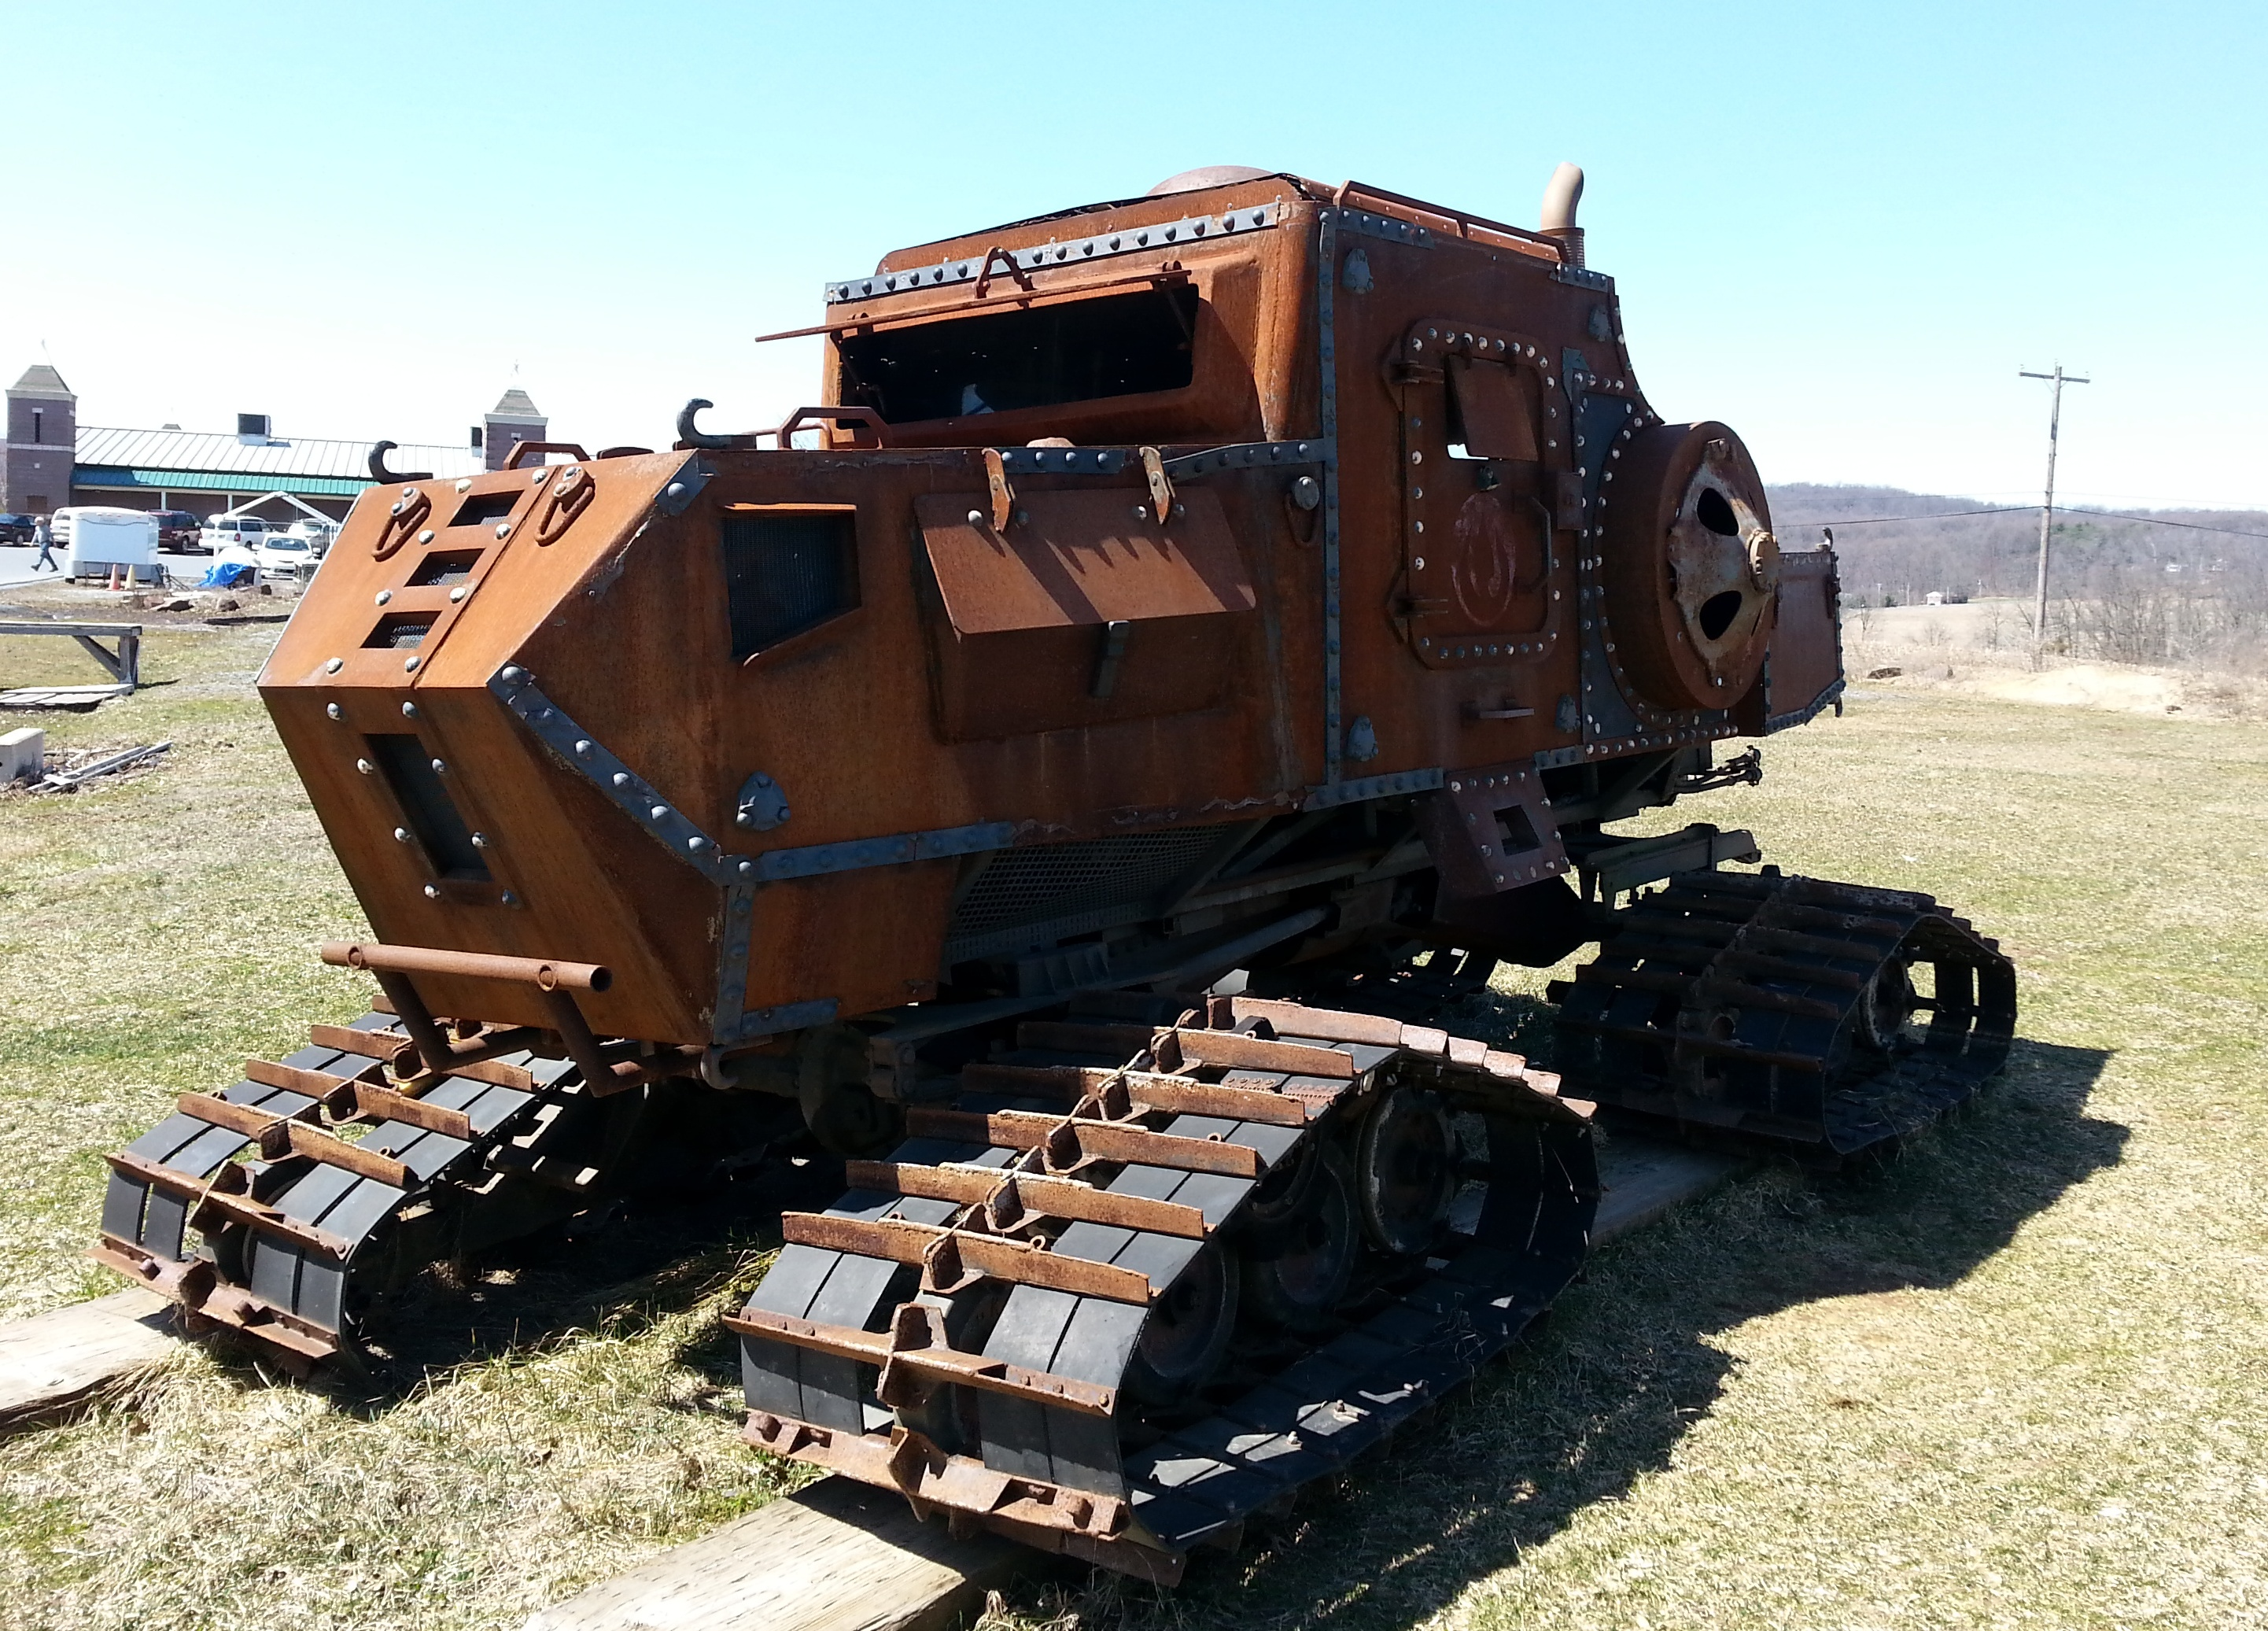 19th Century 4×4 cross between a Steam Shovel and a British Medium Mark A Whippet Tank